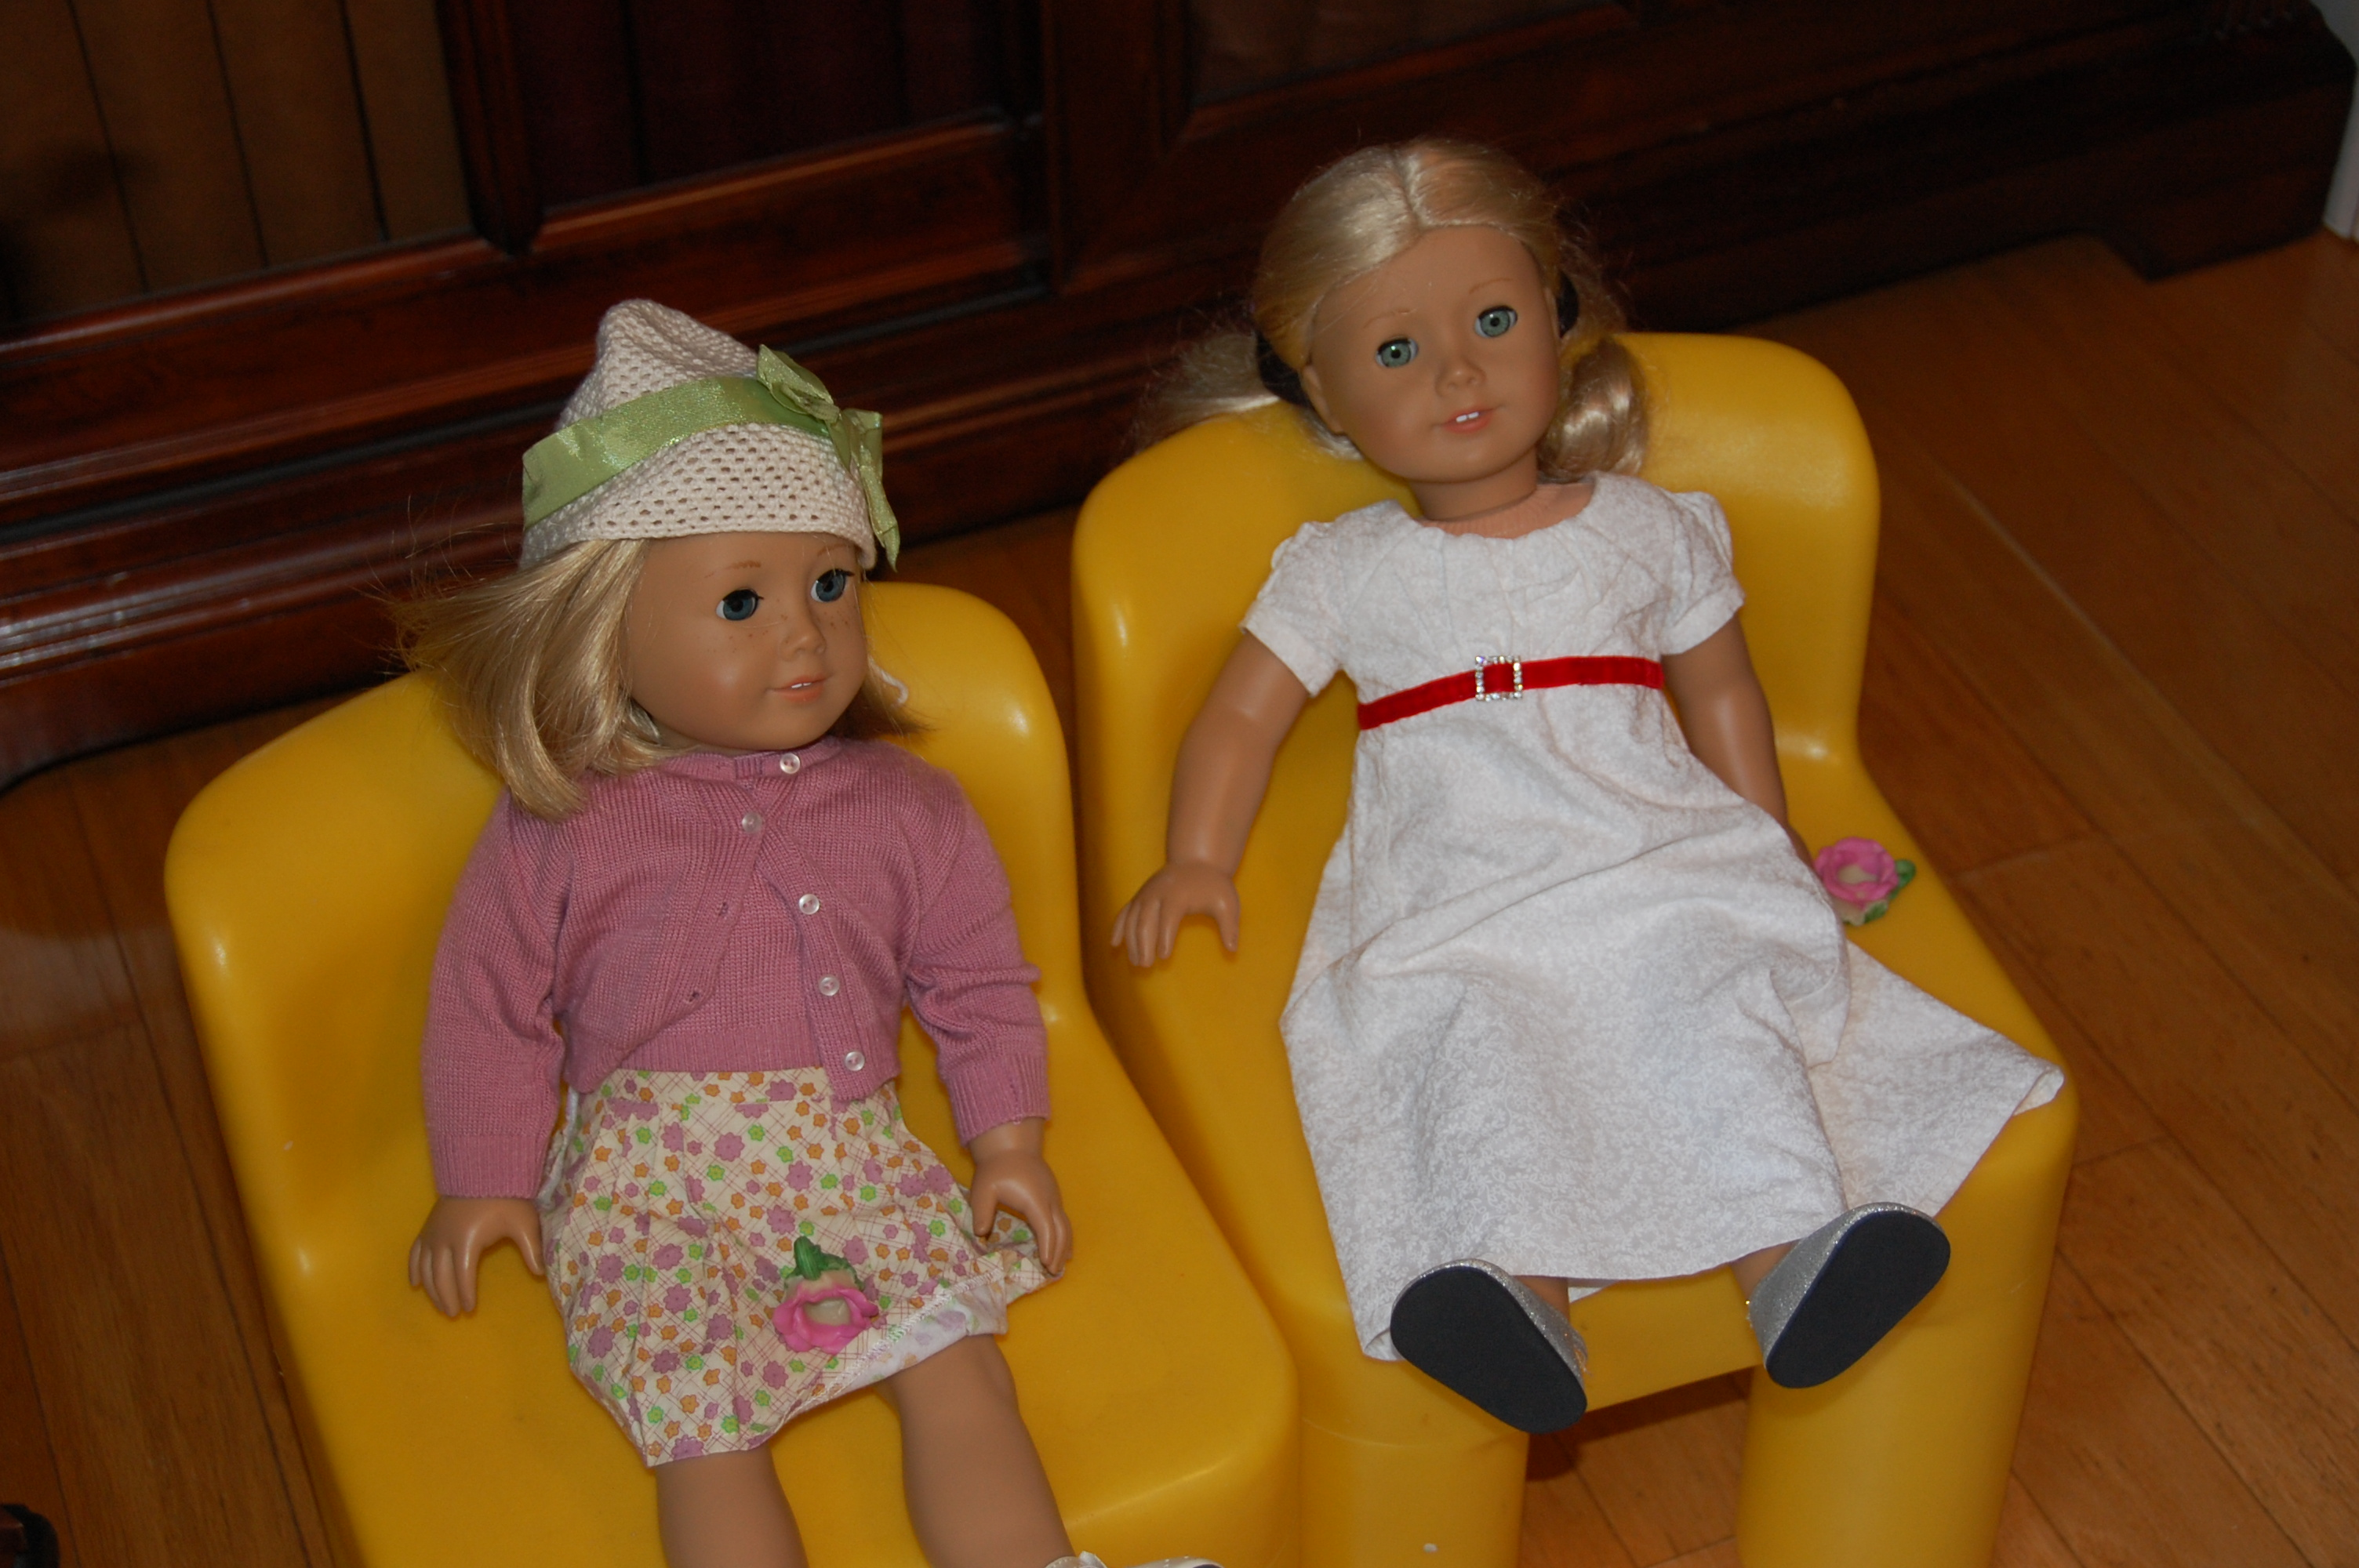 Two of the dolls waiting for their food.